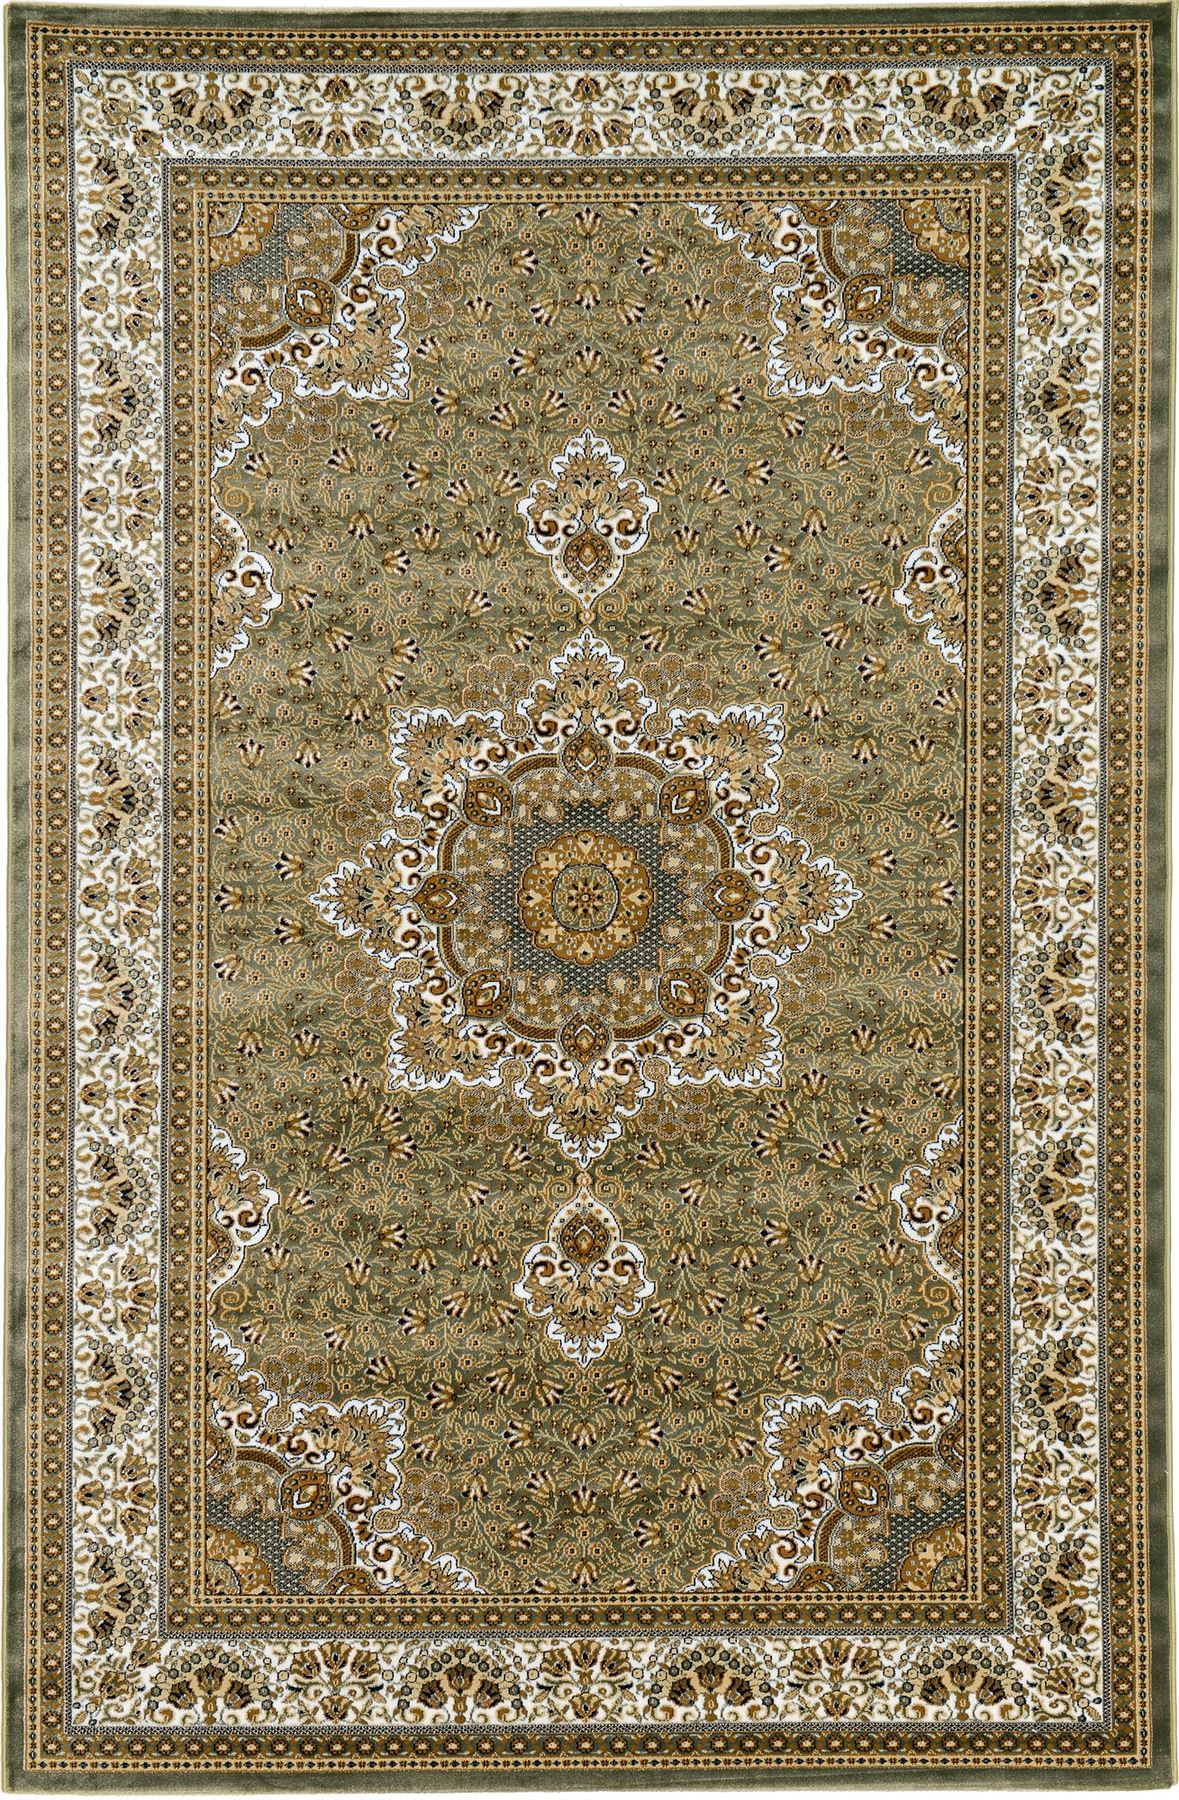 persian 6 39 5 x 9 39 6 kashan design rug traditional area rugs new classic carpet. Black Bedroom Furniture Sets. Home Design Ideas